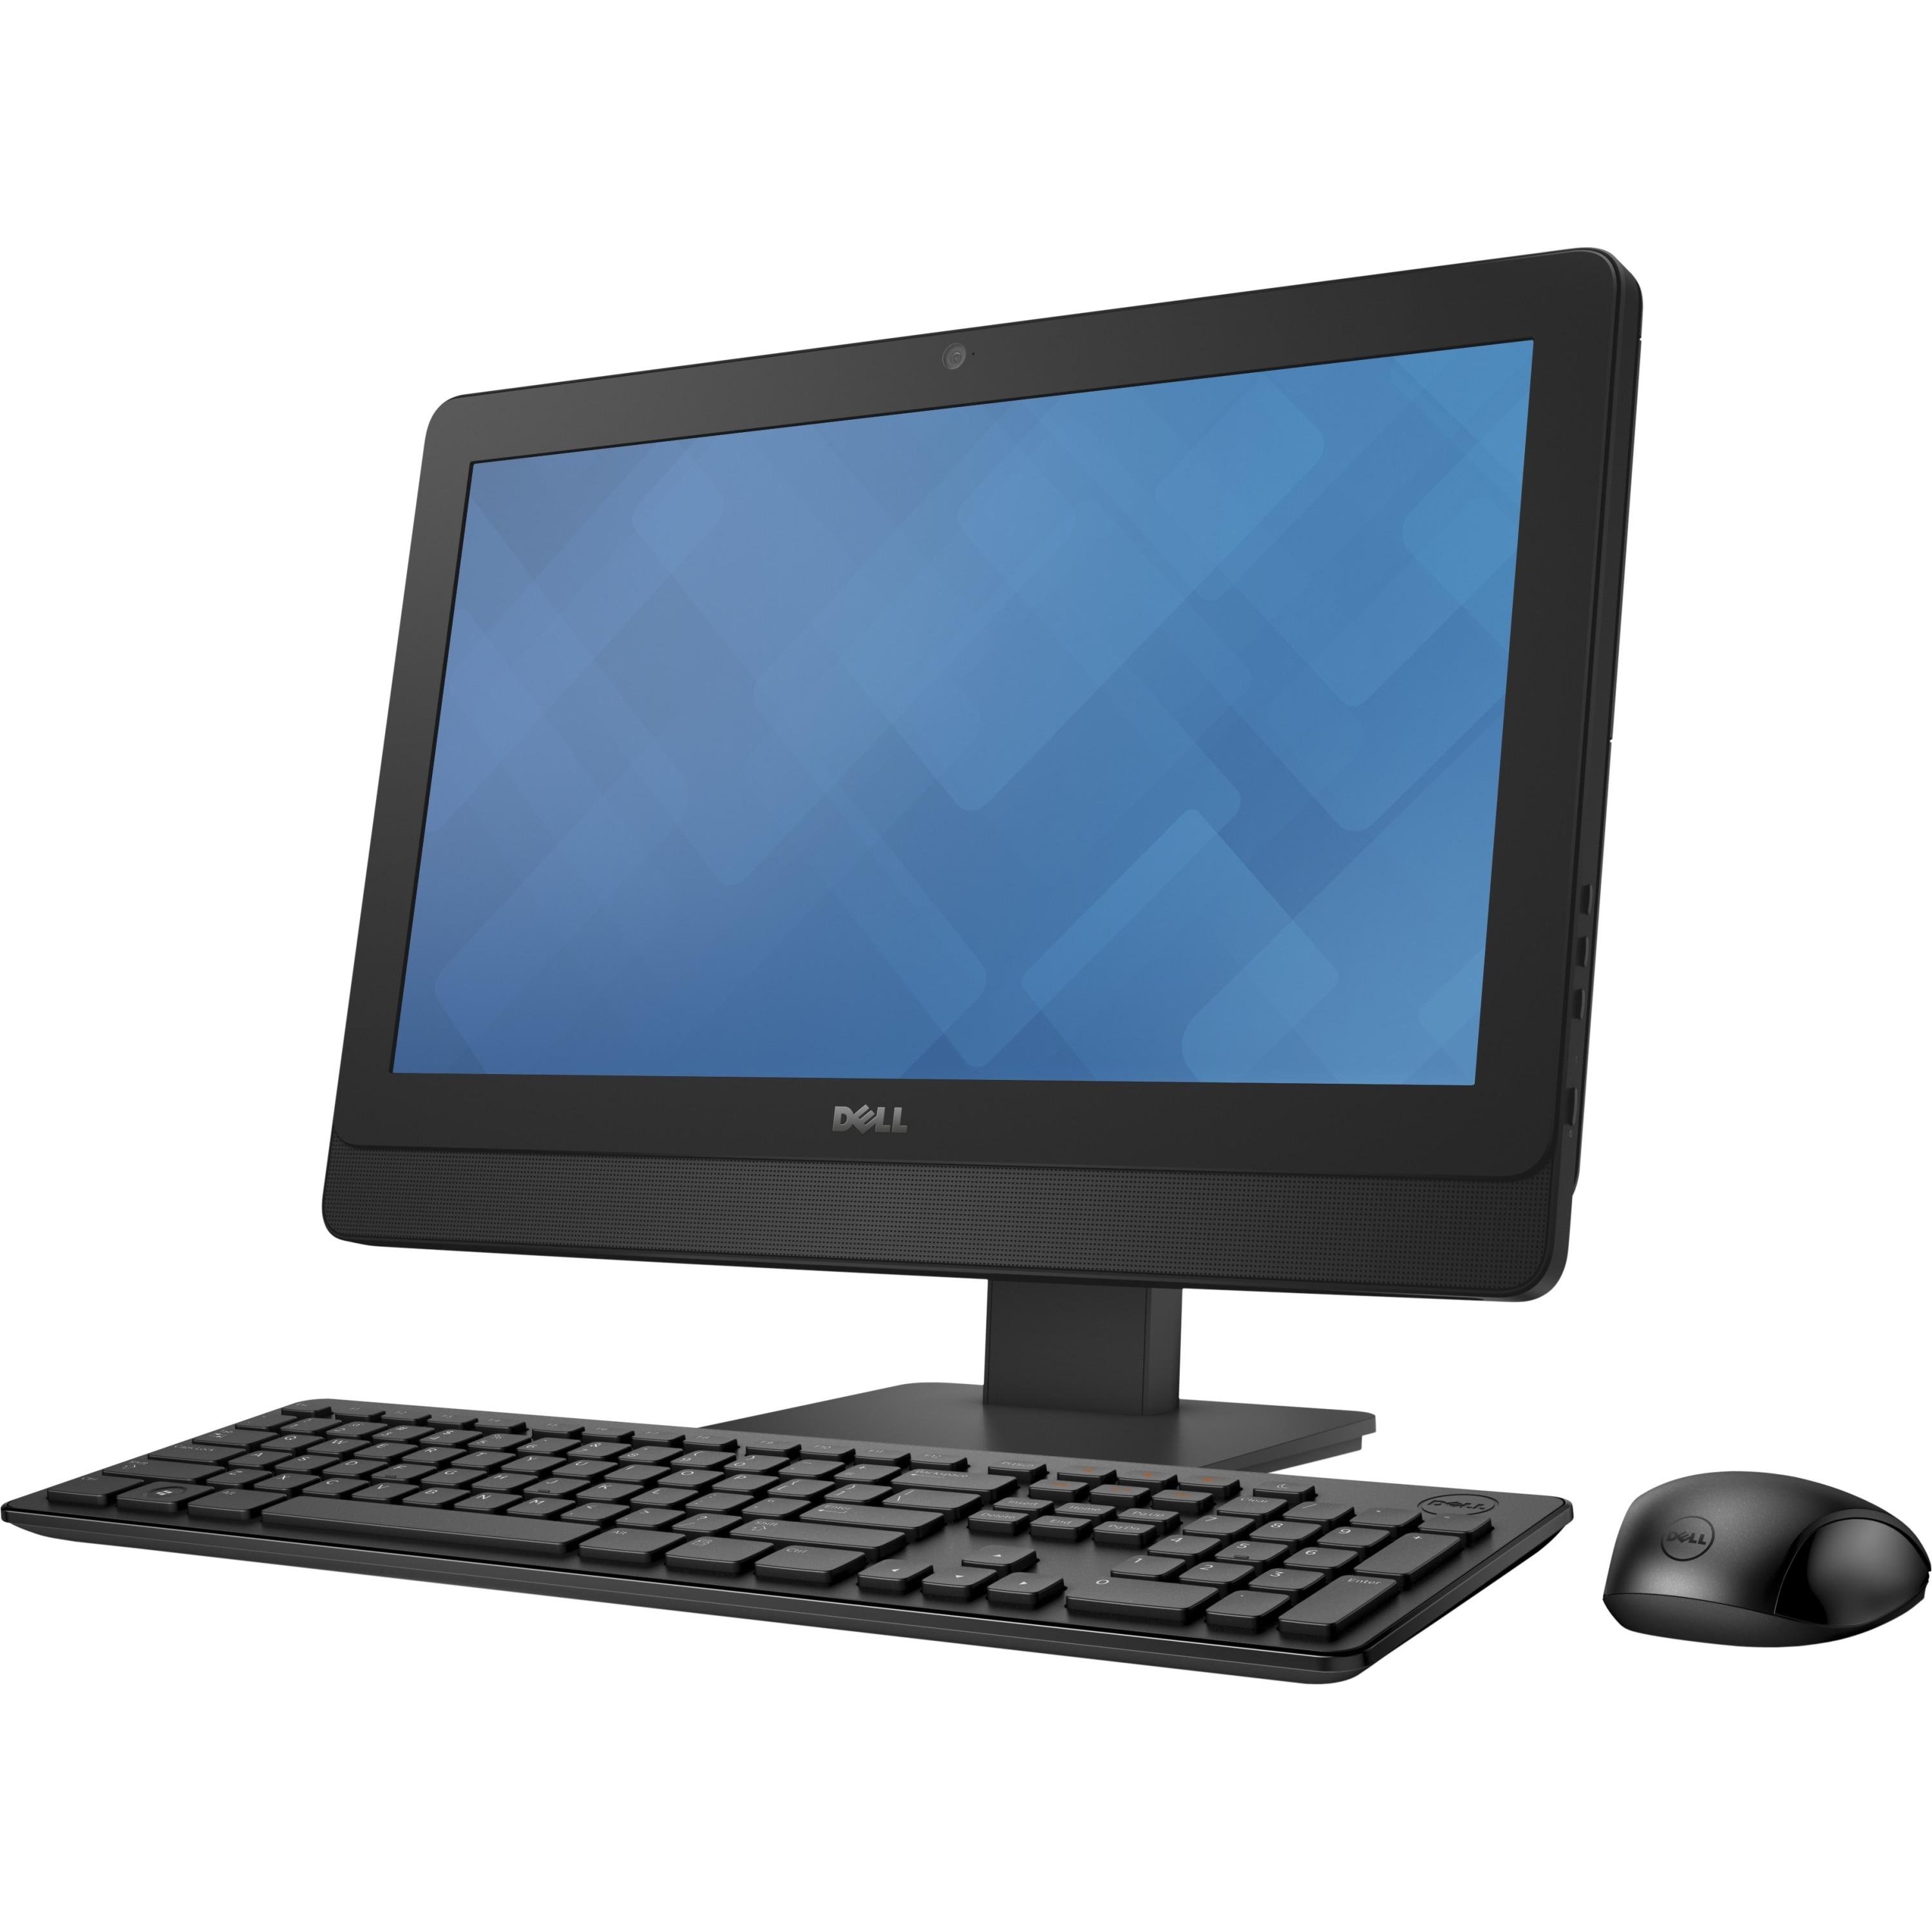 Dell OptiPlex 3030 All-in-One Computer - Intel Core i5 (4th Gen) i5-4